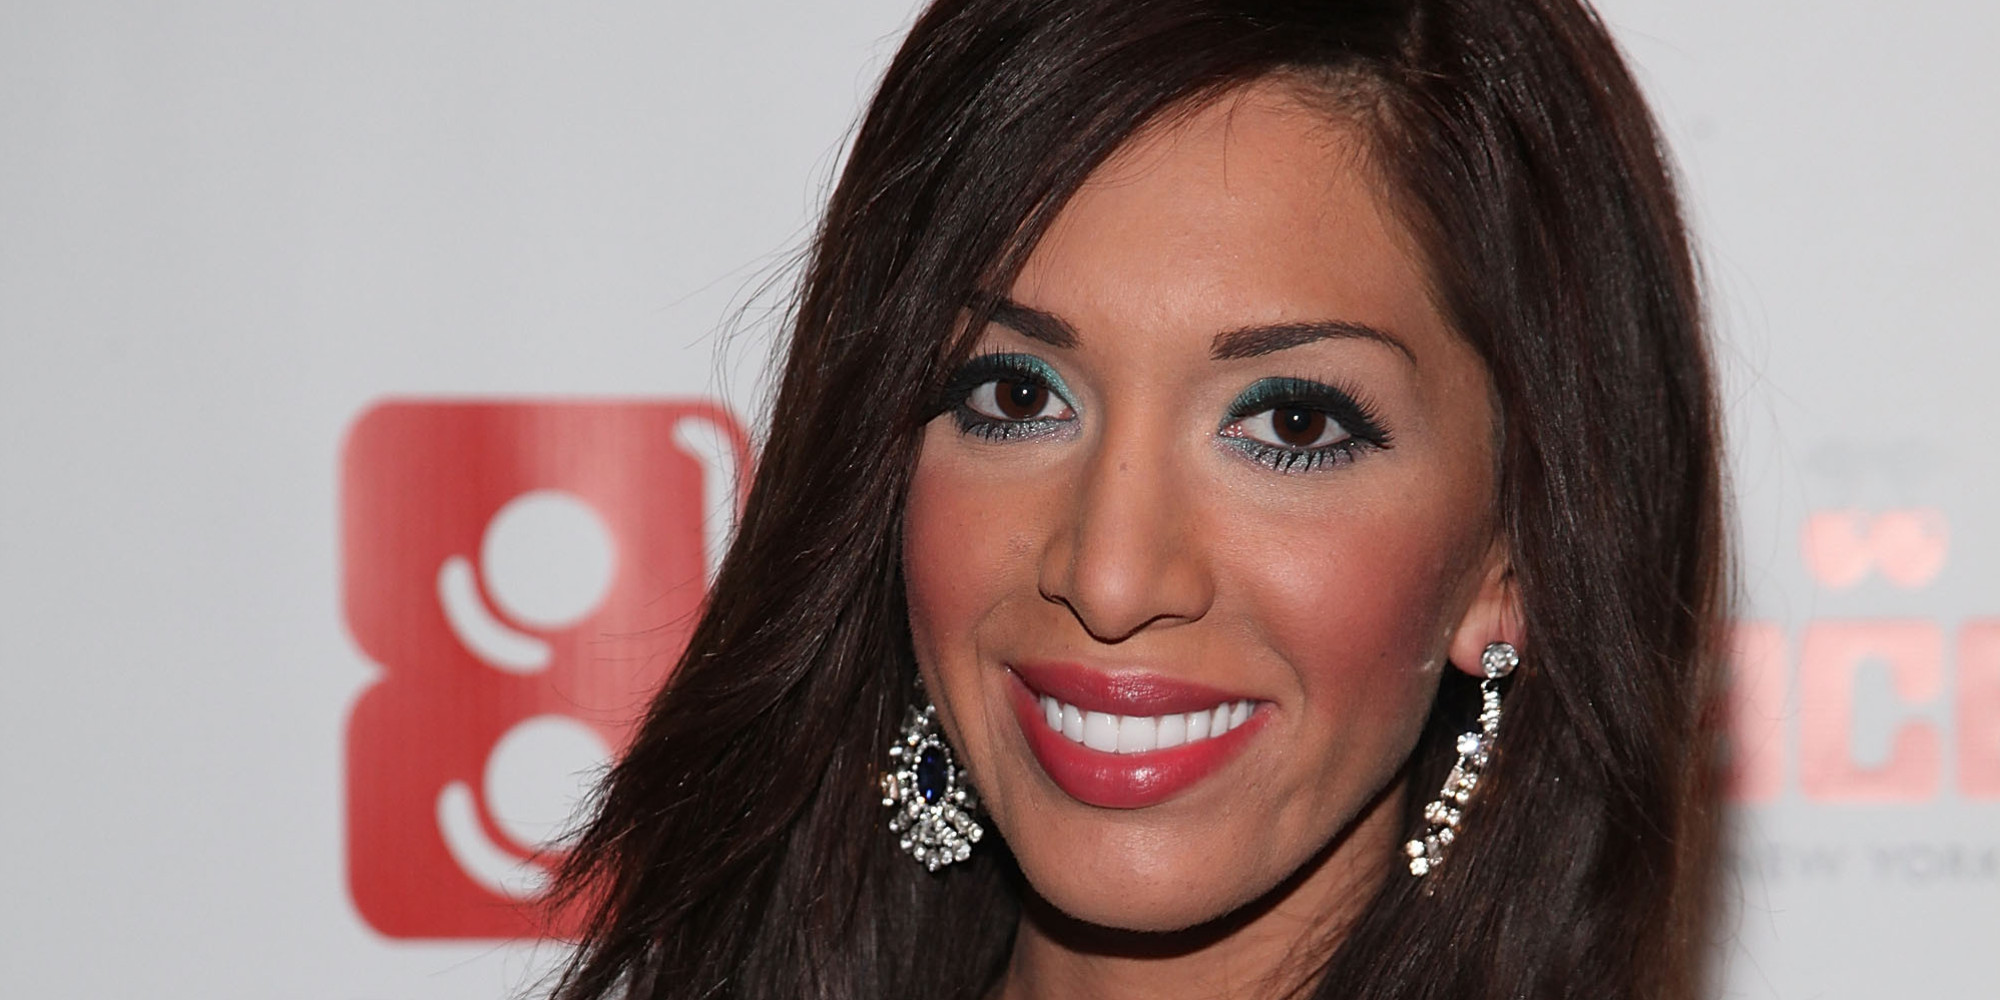 The 25-year old daughter of father (?) and mother(?), 170 cm tall Farrah Abraham in 2017 photo